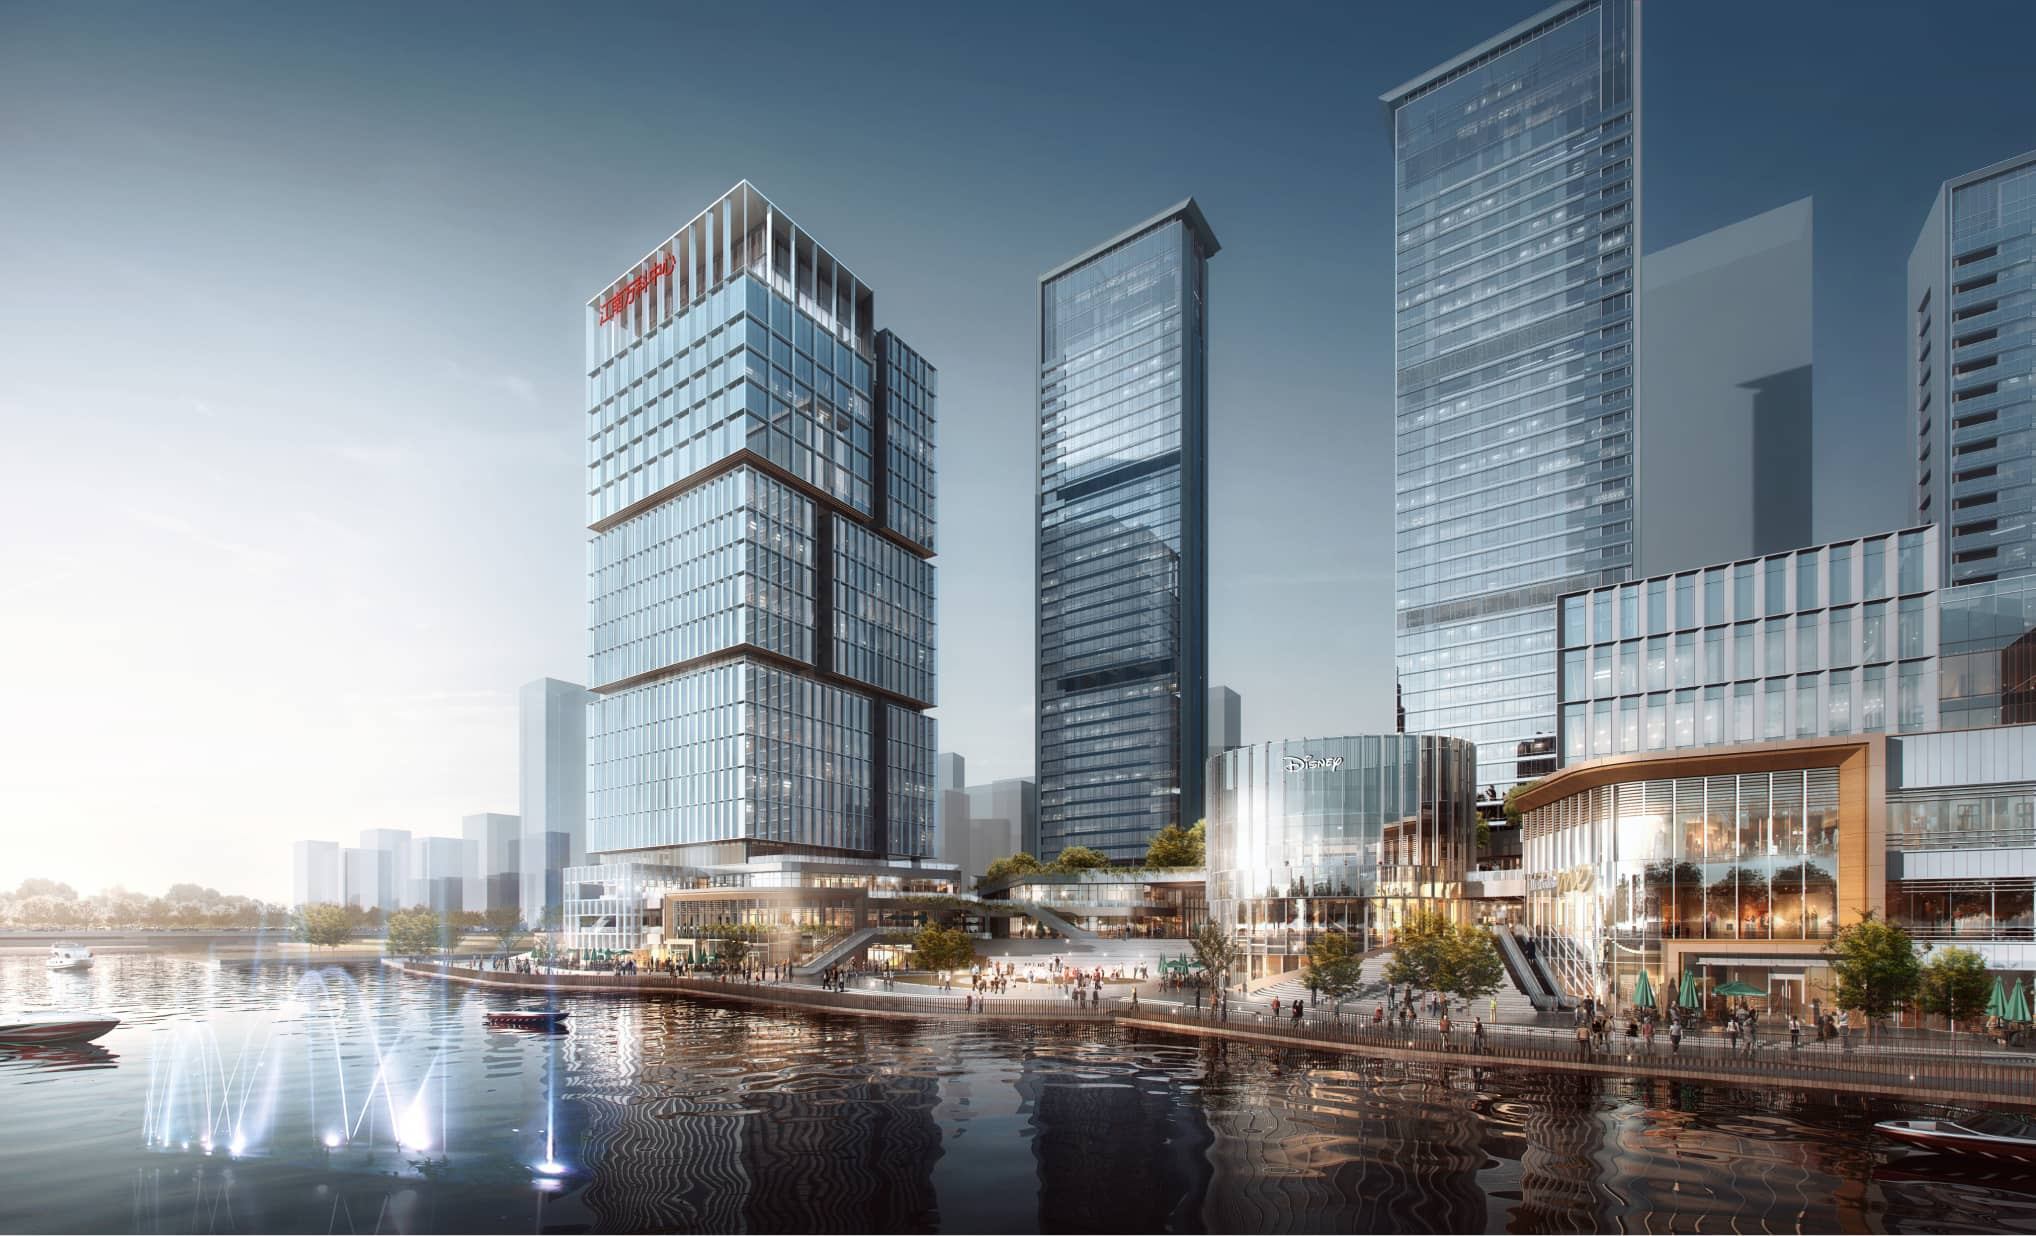 The 2022 Asian Games Athlete Village Waterfront Mixed-Use